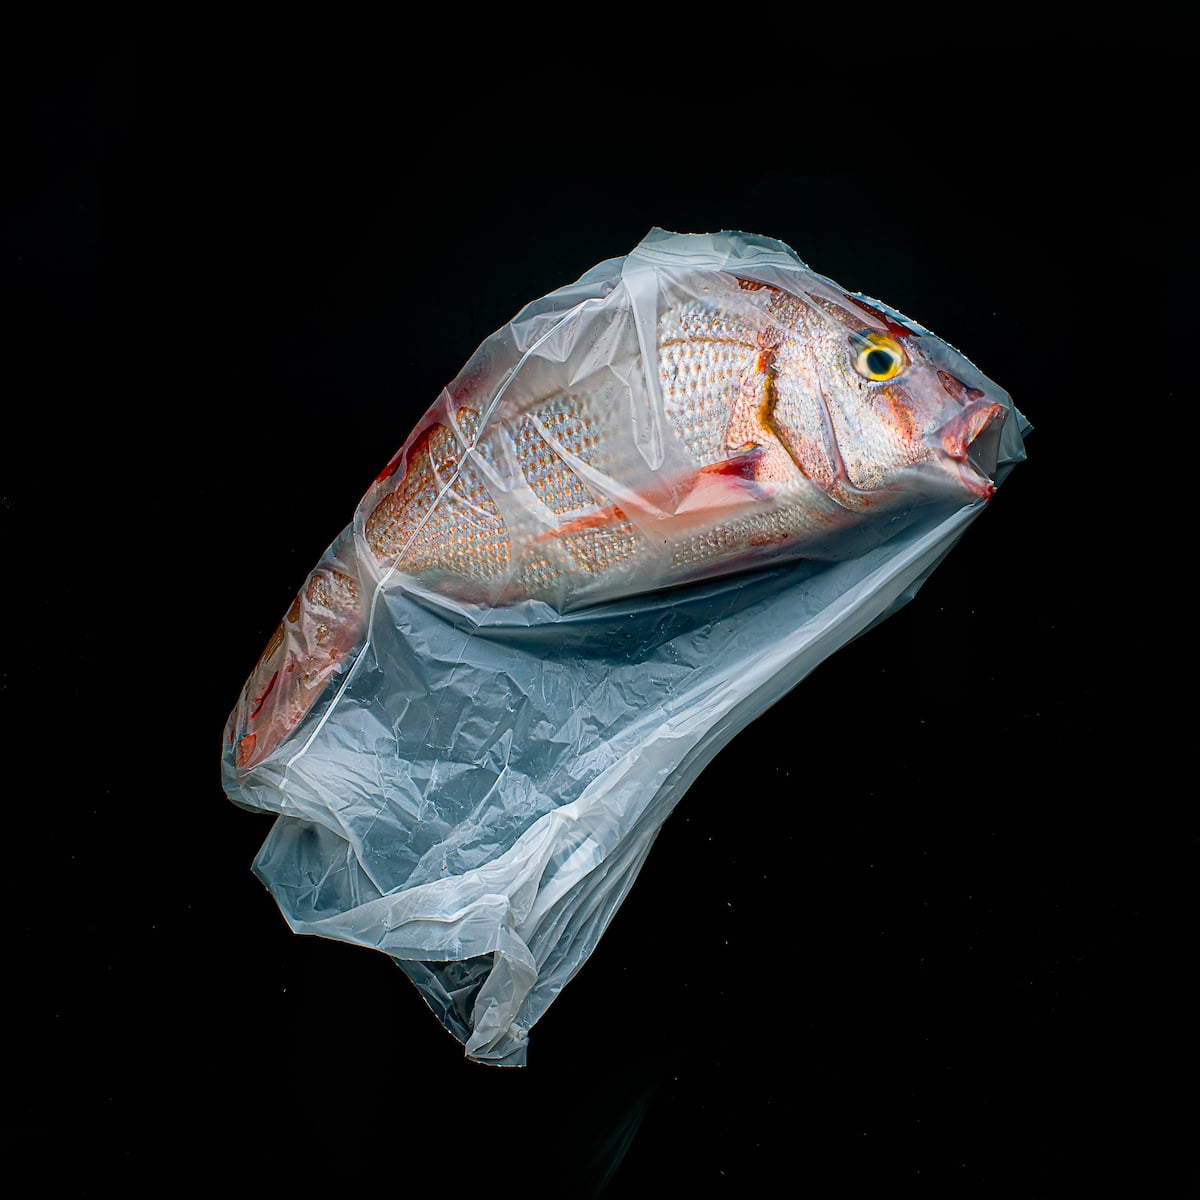 Fish Trapped in Plastic